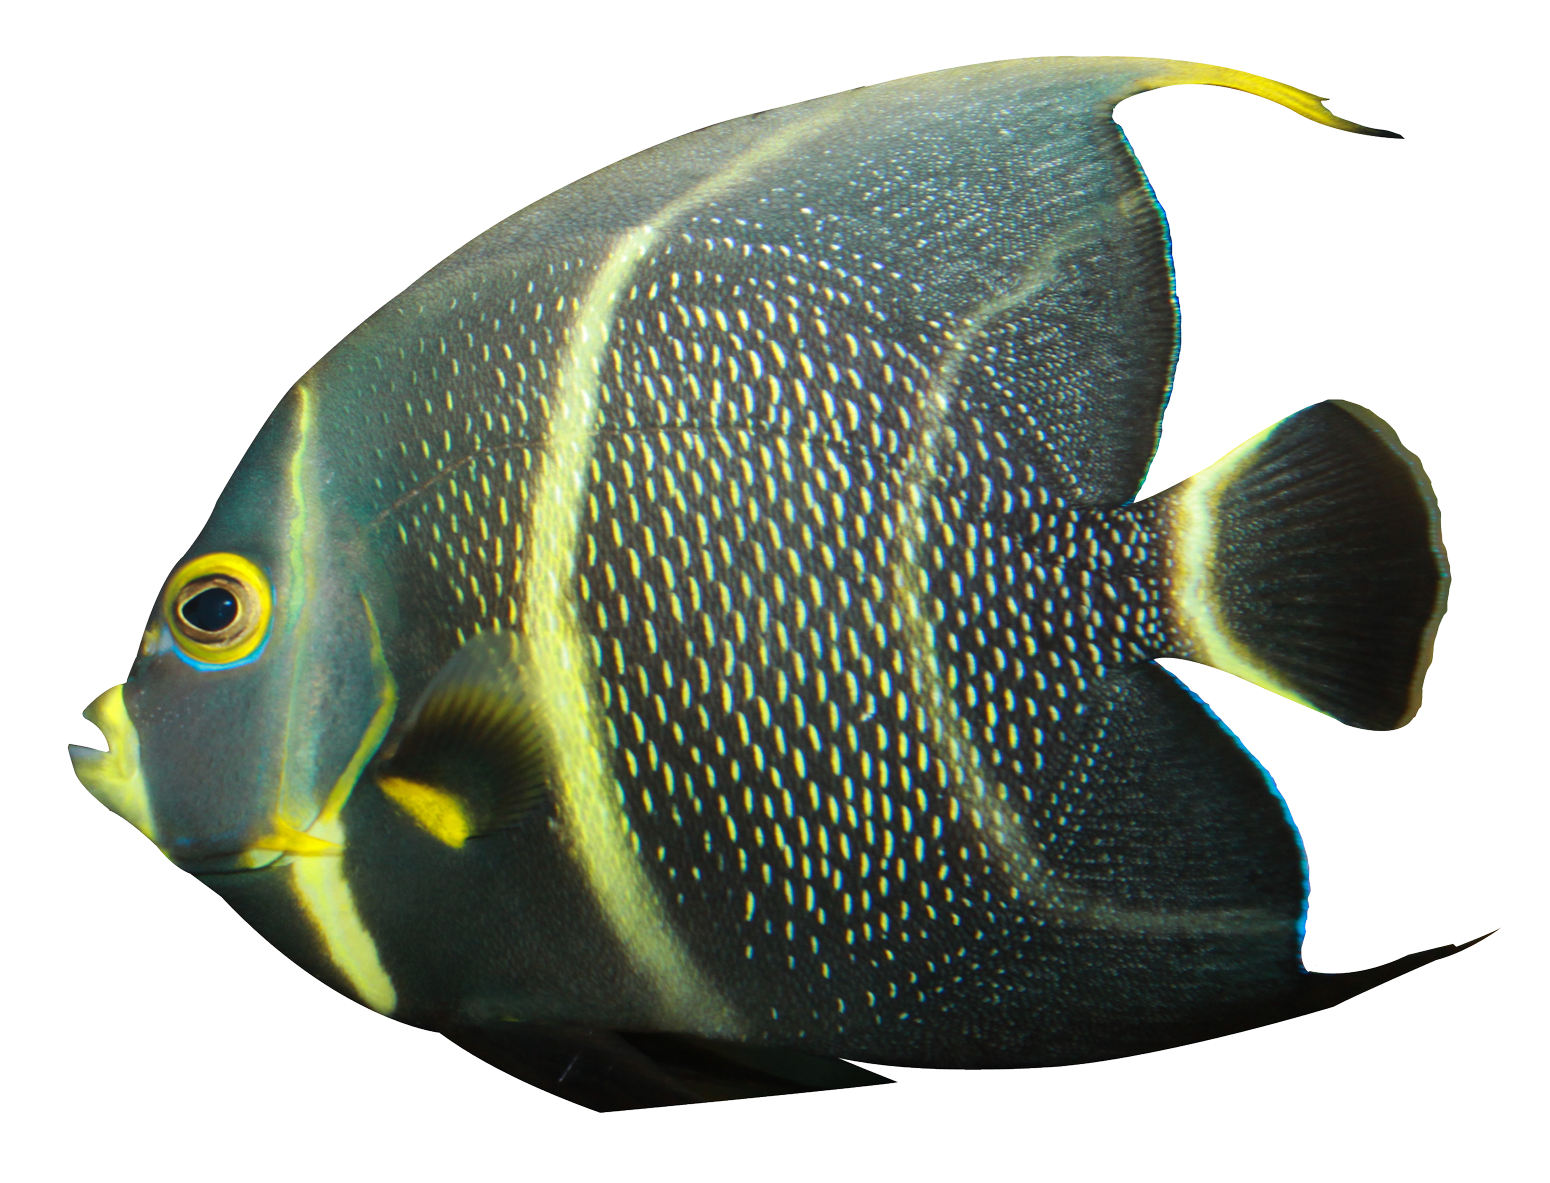 angelfish png transparent image pngpix